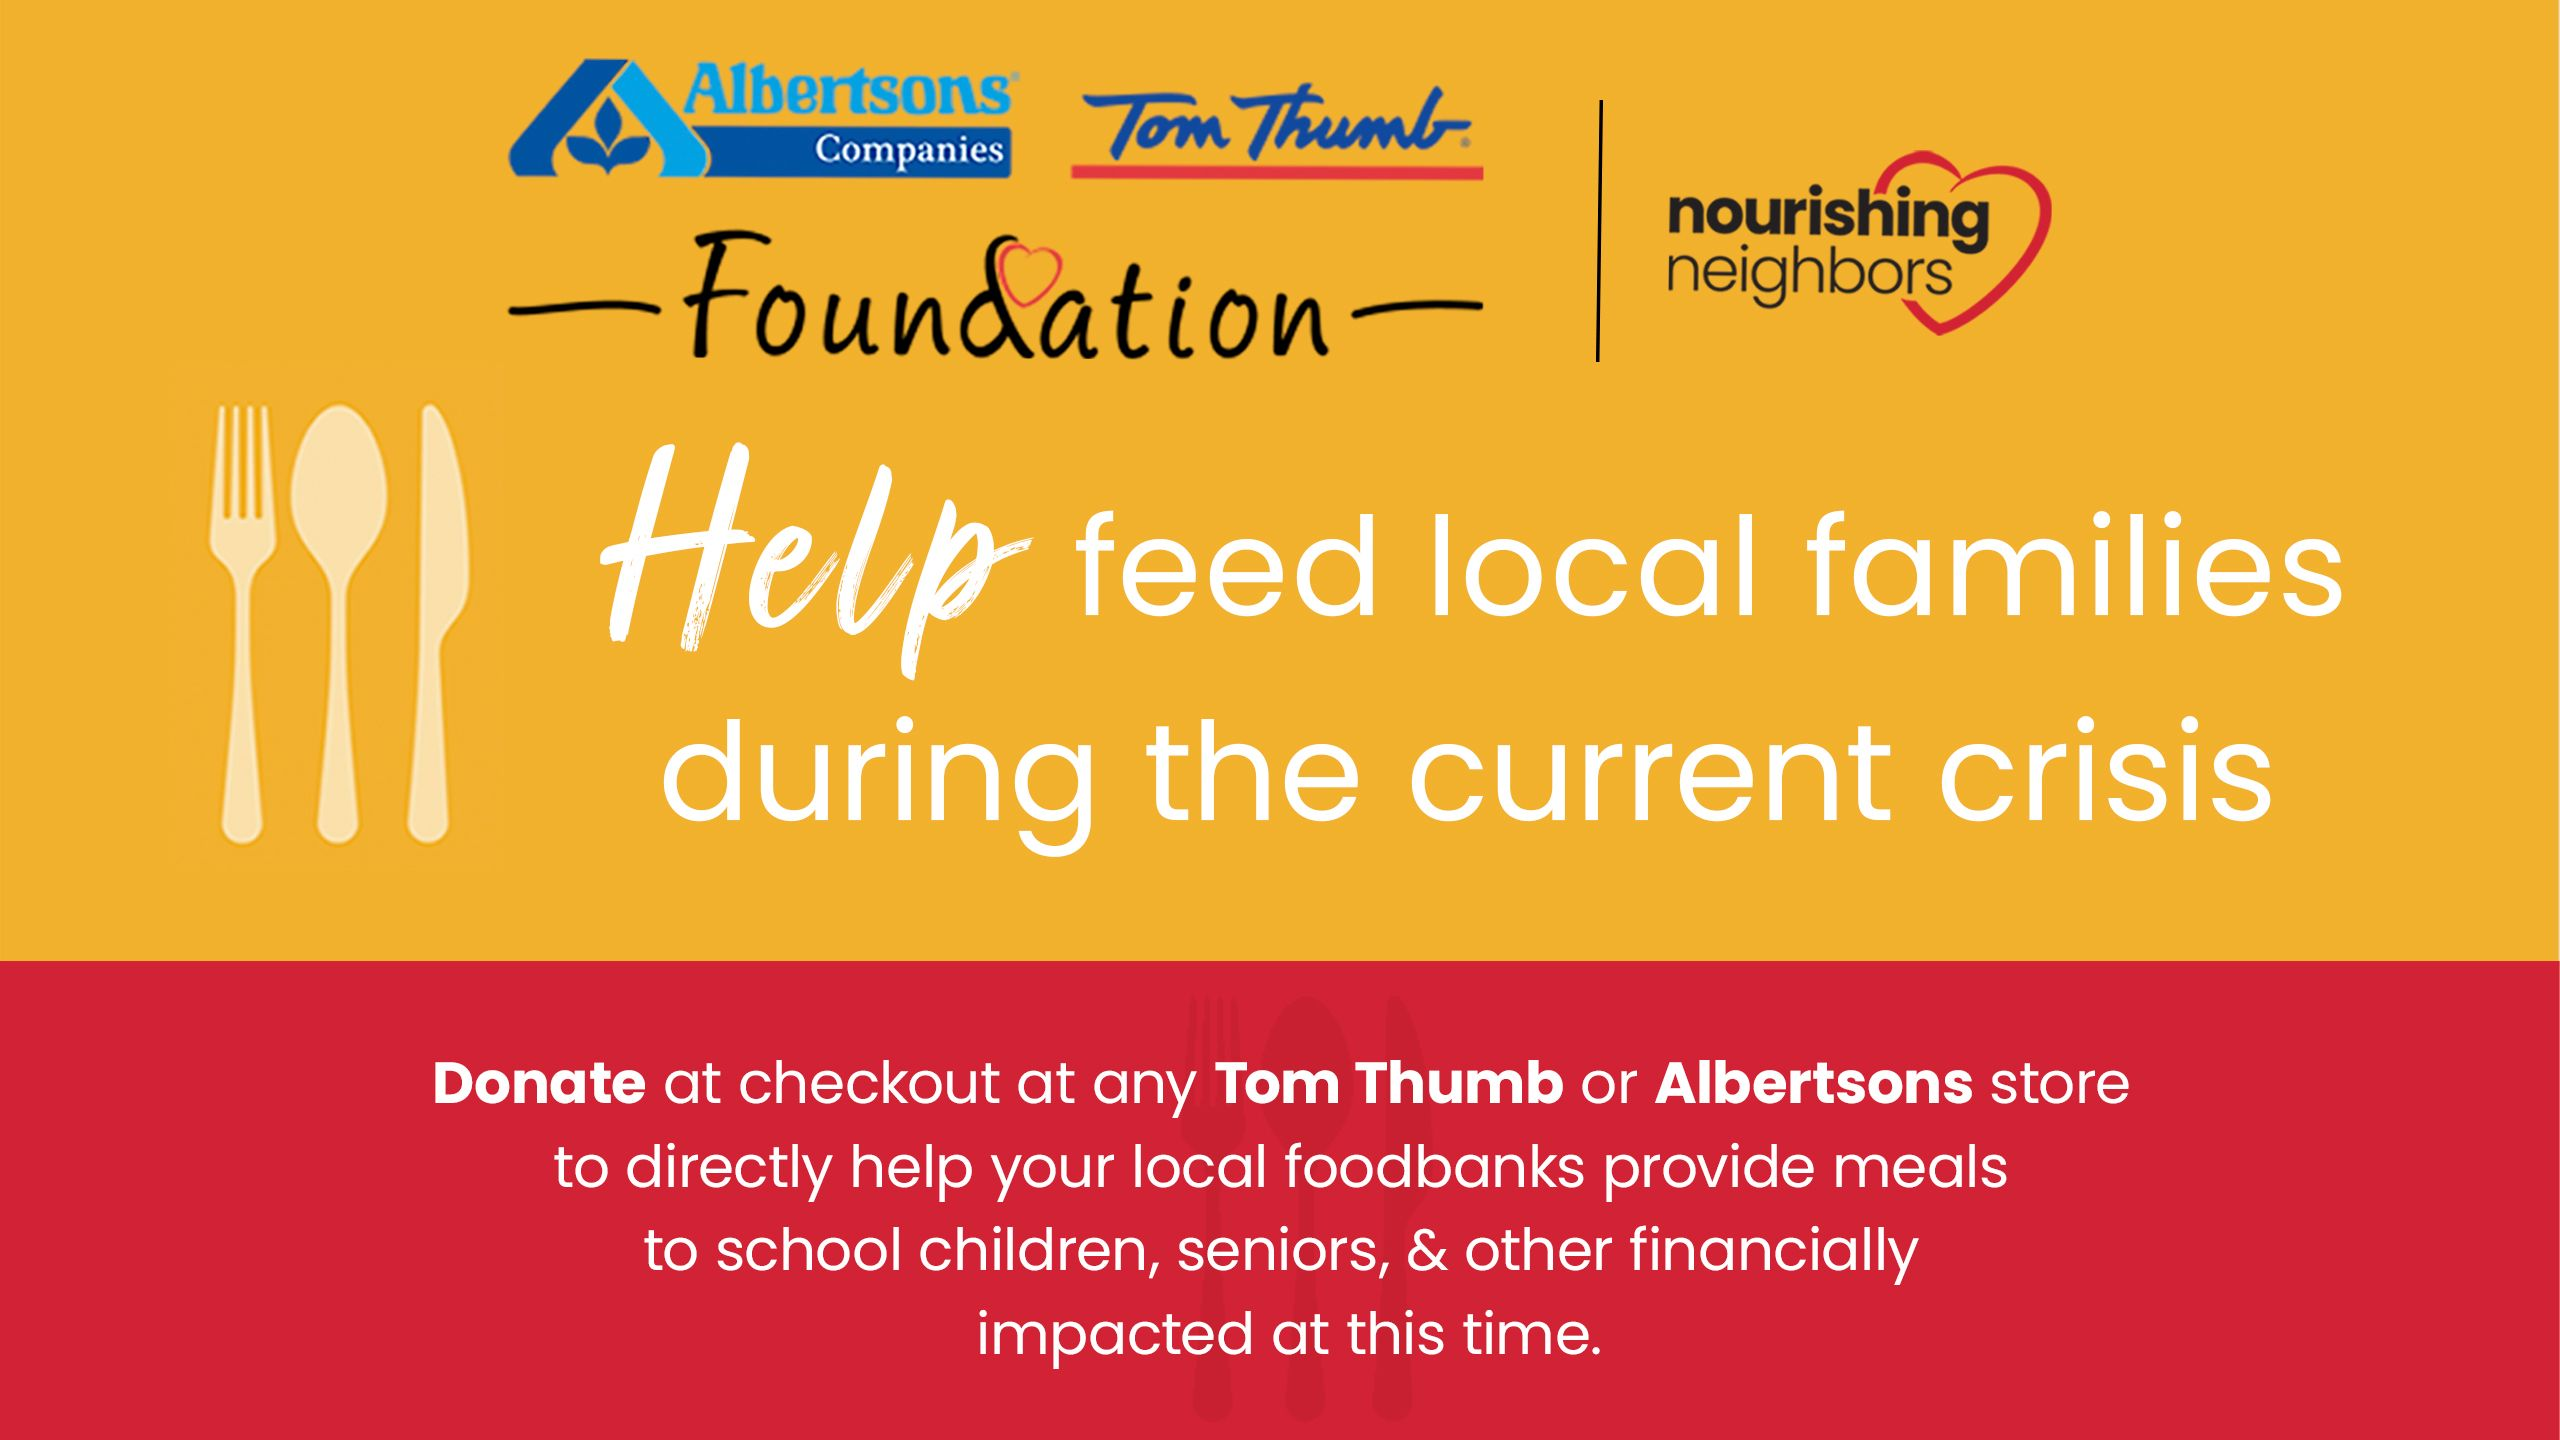 Albertsons Tom Thumb Foundation